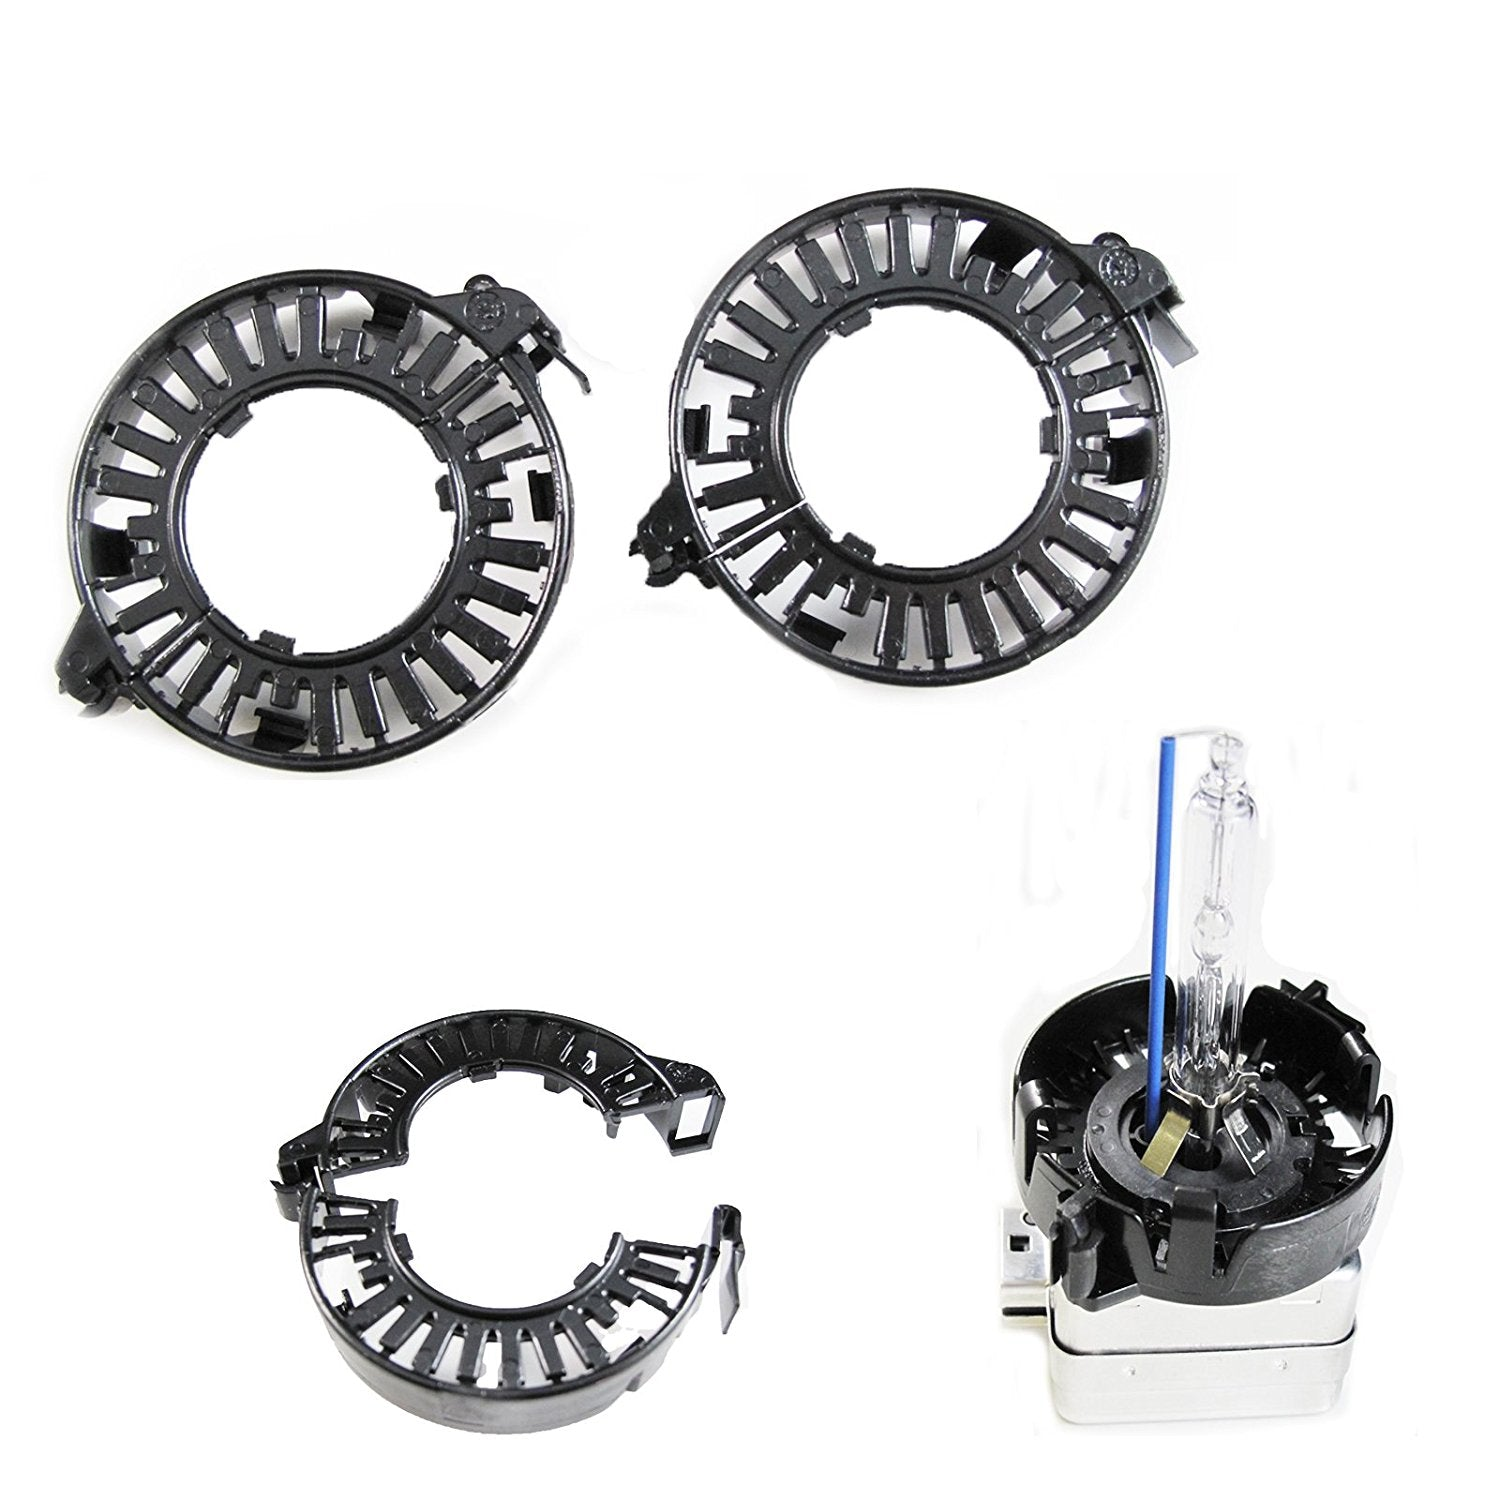 D1S D3S HID Bulbs Holders Clip Rings Retainers Audi BMW